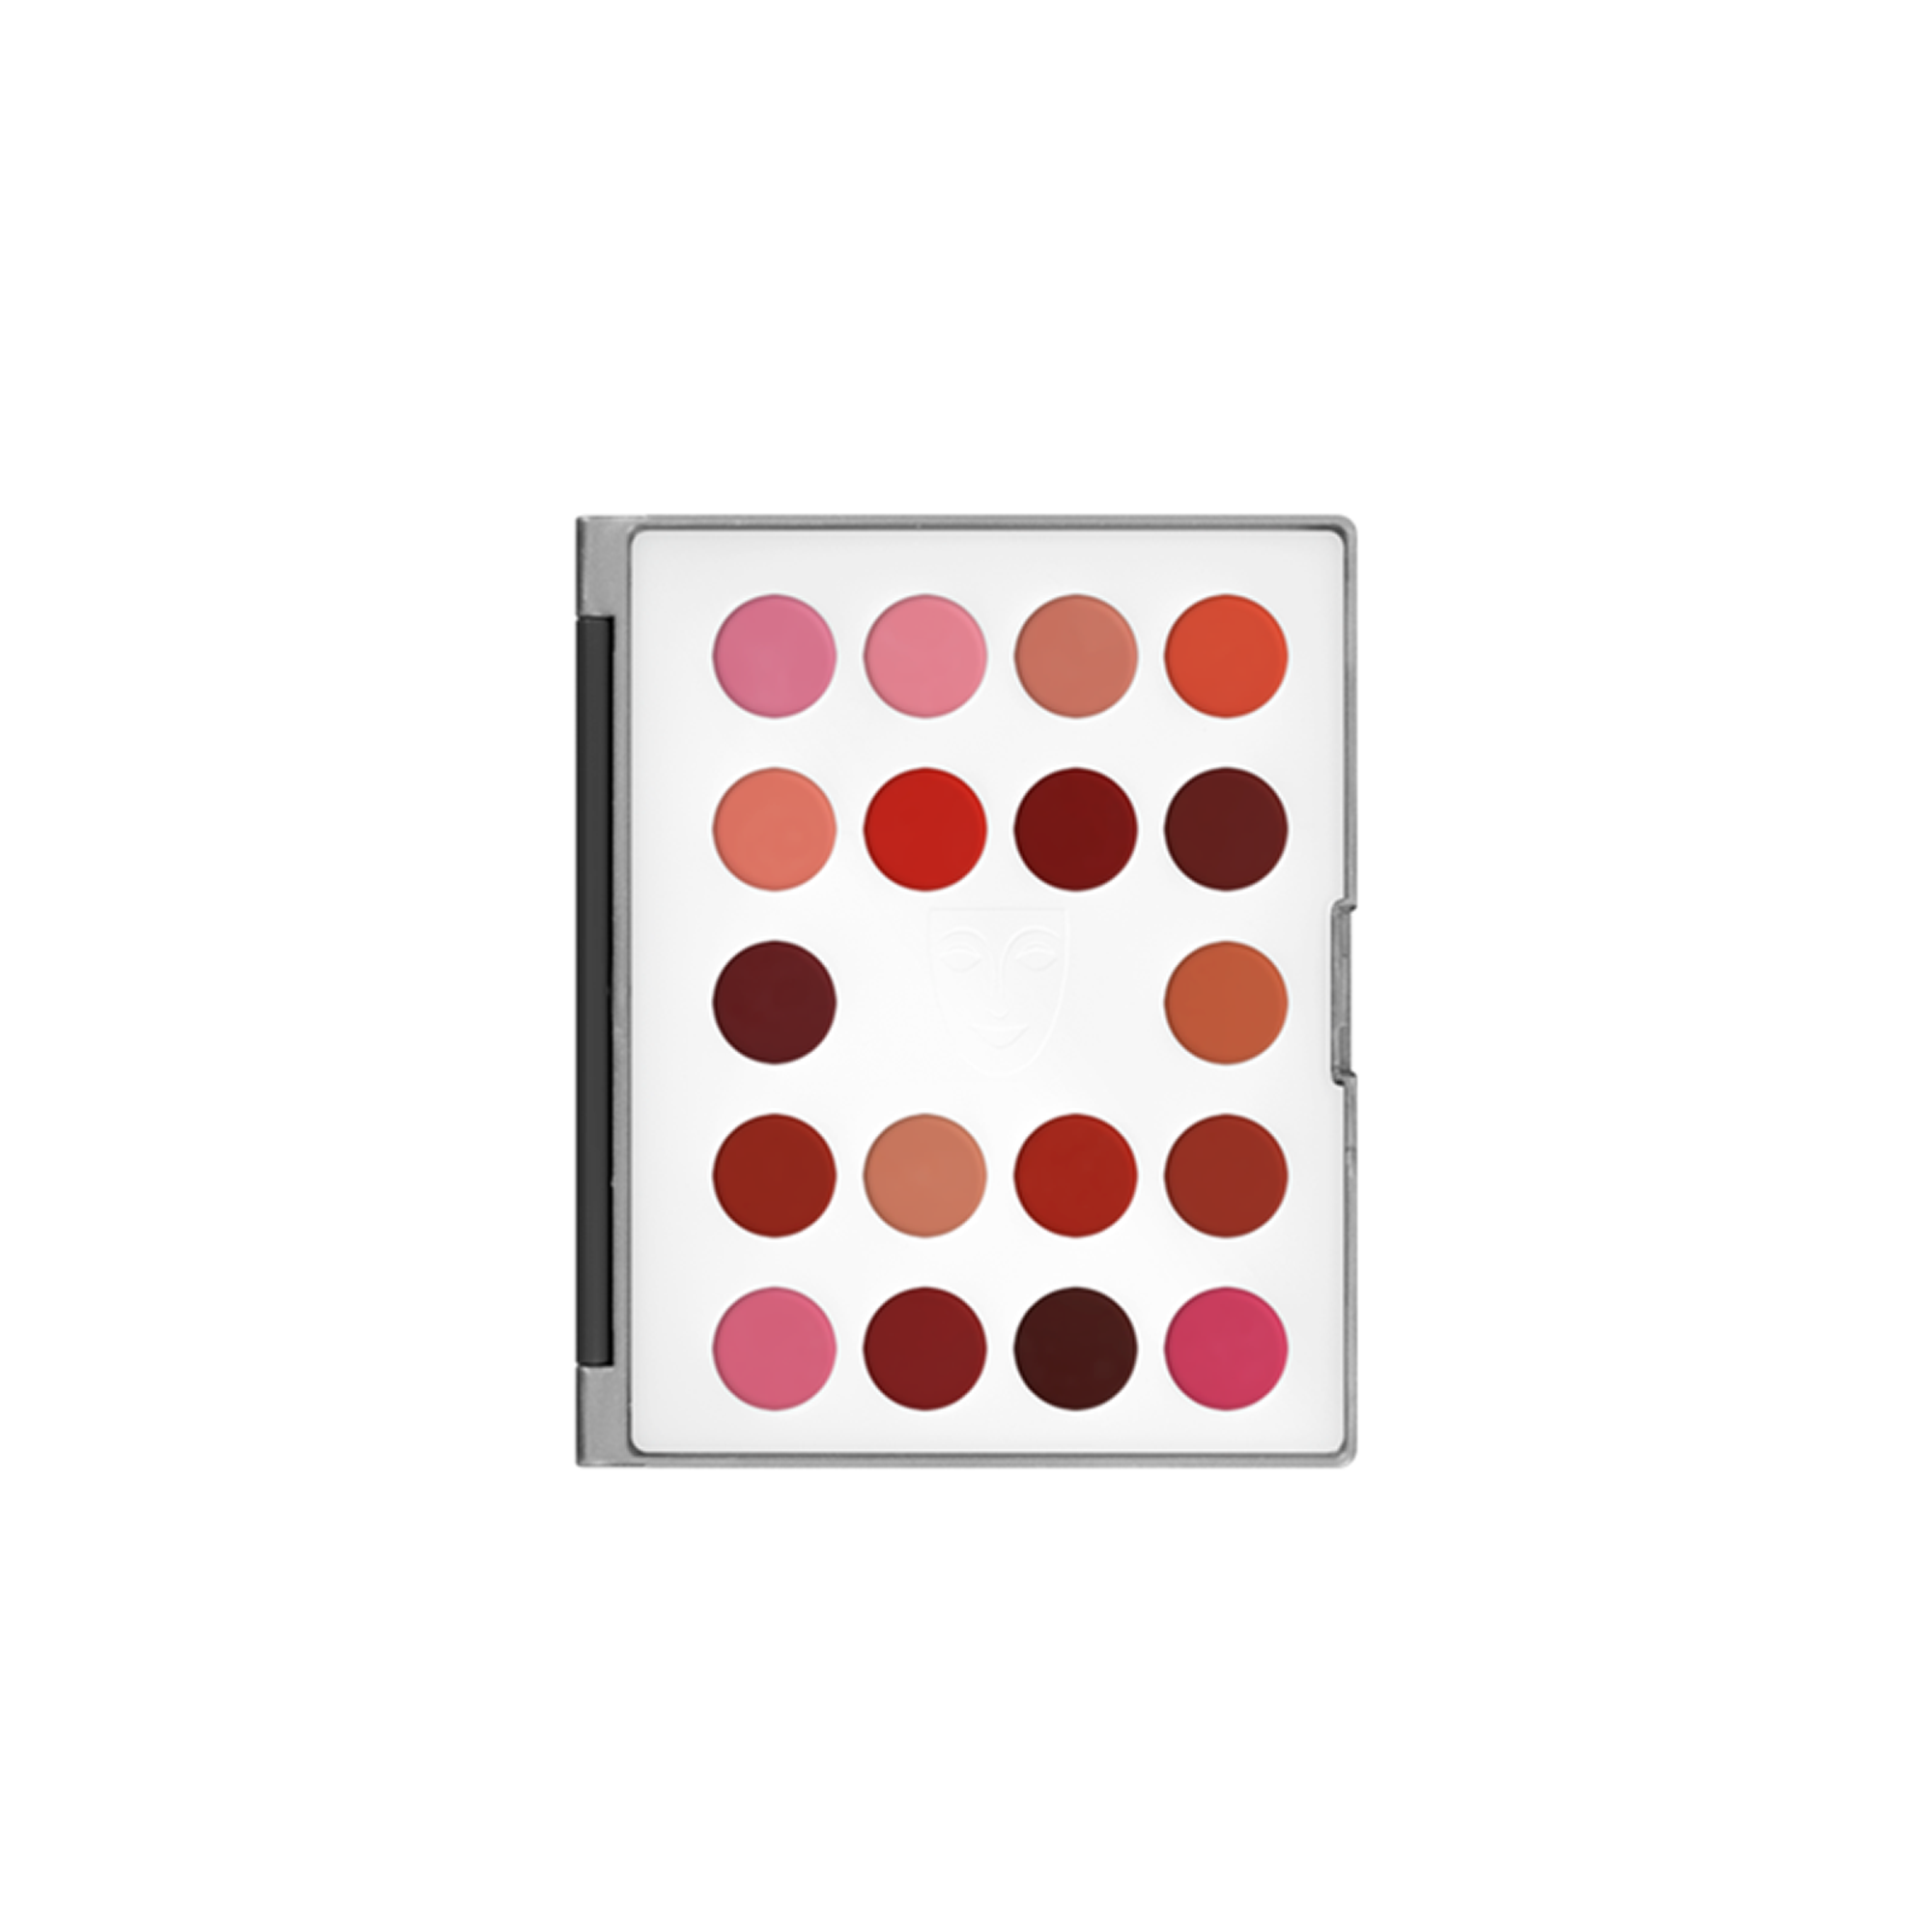 Kryolan Lip Rouge 18 Colour Mini Palette - LC - Red Carpet FX - Professional Makeup